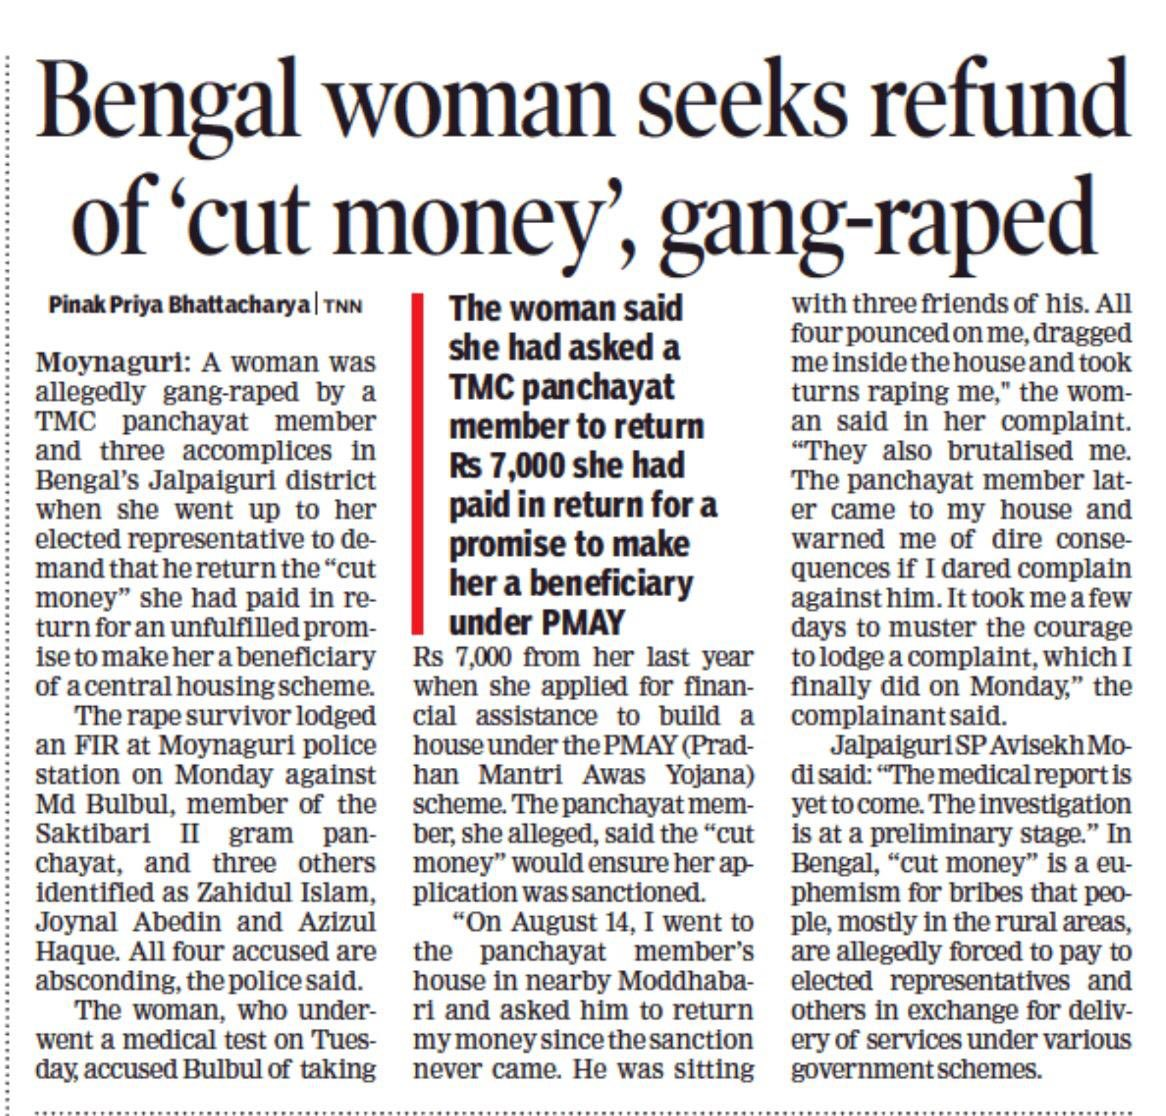 A woman in Bengal is gangraped after she asks a TMC panchayat member to return Rs 7000 she had paid in return for a promise to make her a beneficiary under Pradhan Mantri Aawas Yojana.   This is happening in Bengal, the land of Maa Durga where the CM is also a woman. <br>http://pic.twitter.com/x7L2y3WjD3